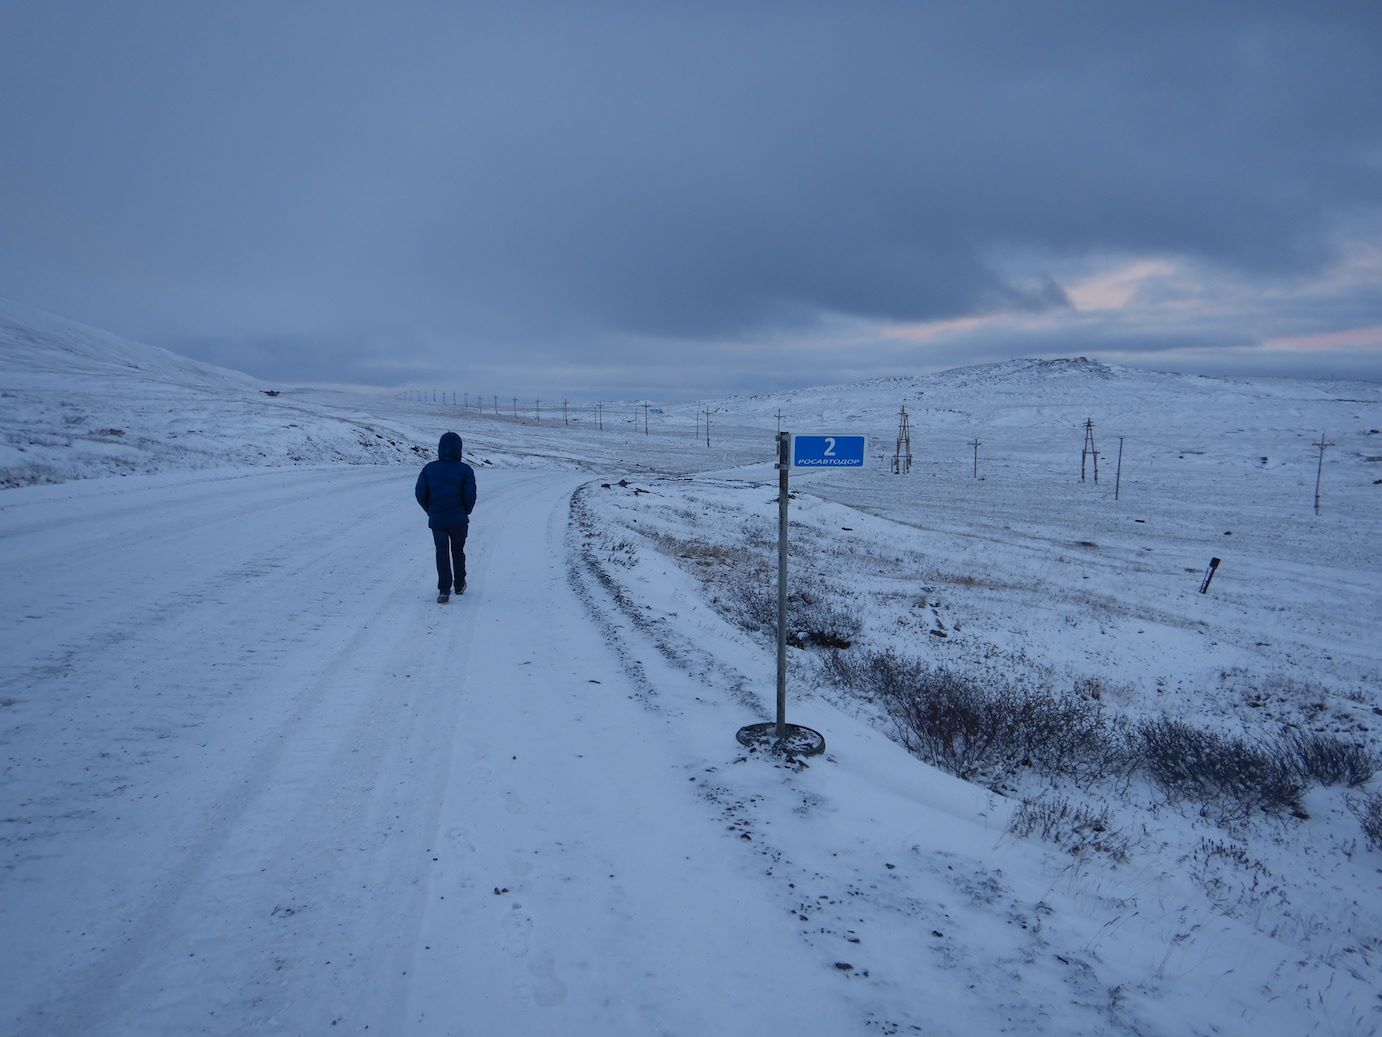 Legendary adventure/discovery film director    Bertrand Delapierre    uses his walking commute in    Tiksi    to think about our film's title ideas...